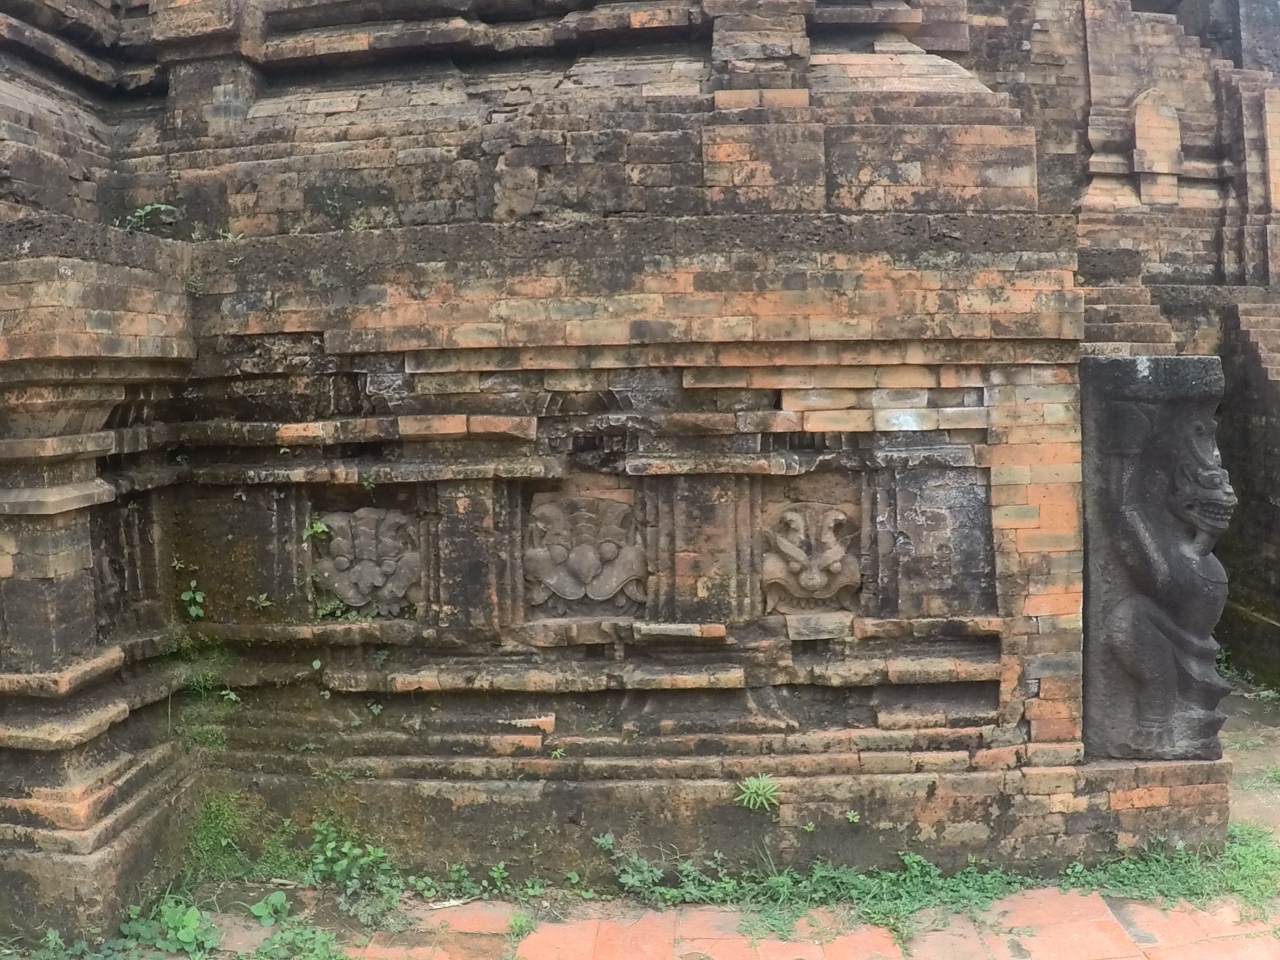 stone carvings My Son temples Vietnam